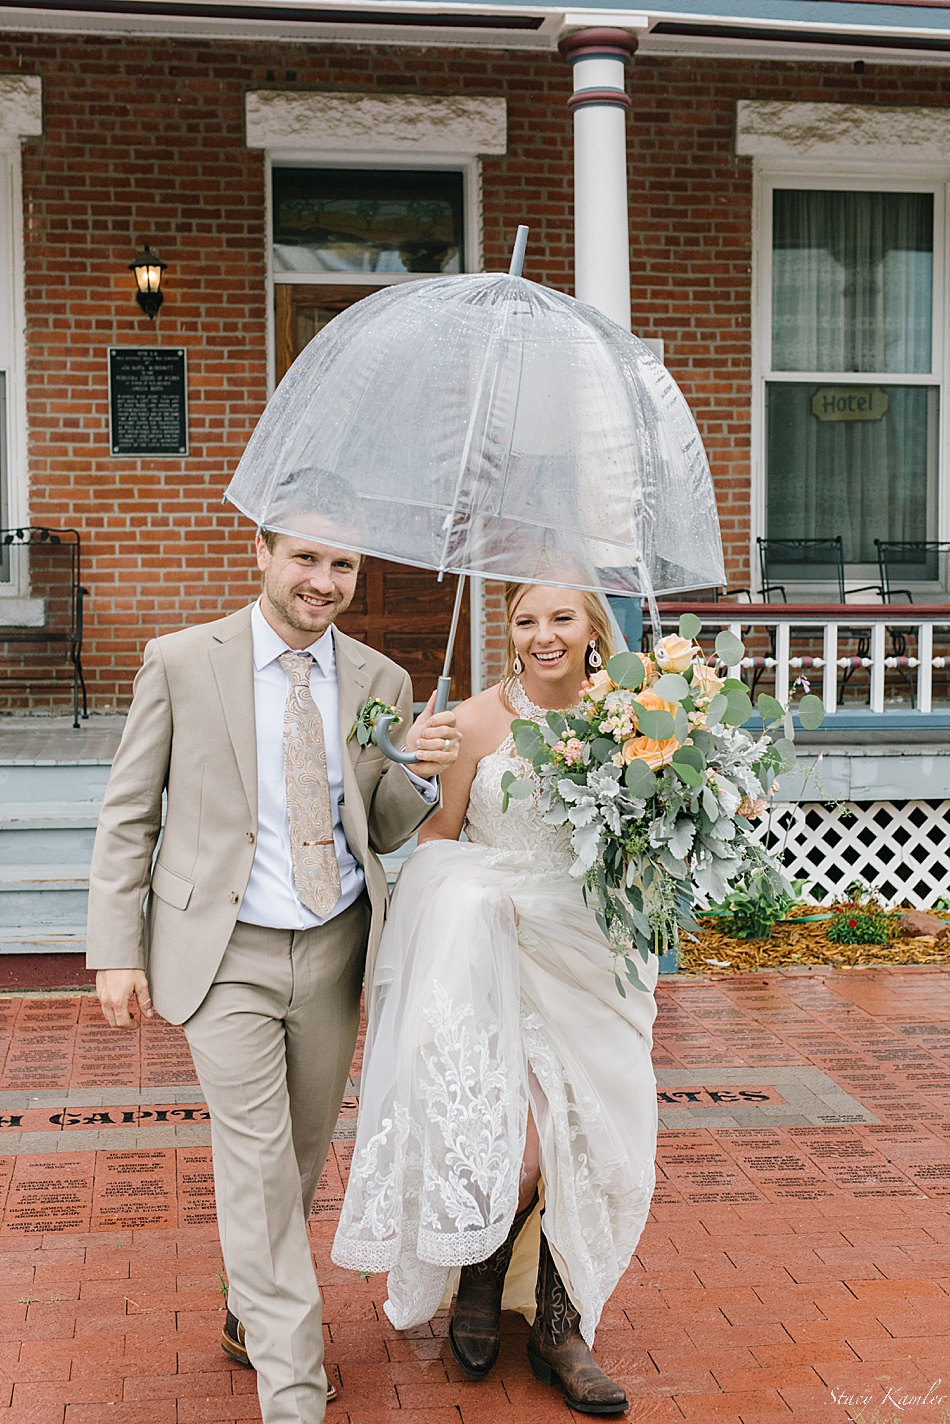 Bride and Groom using a clear umbrella in the rain